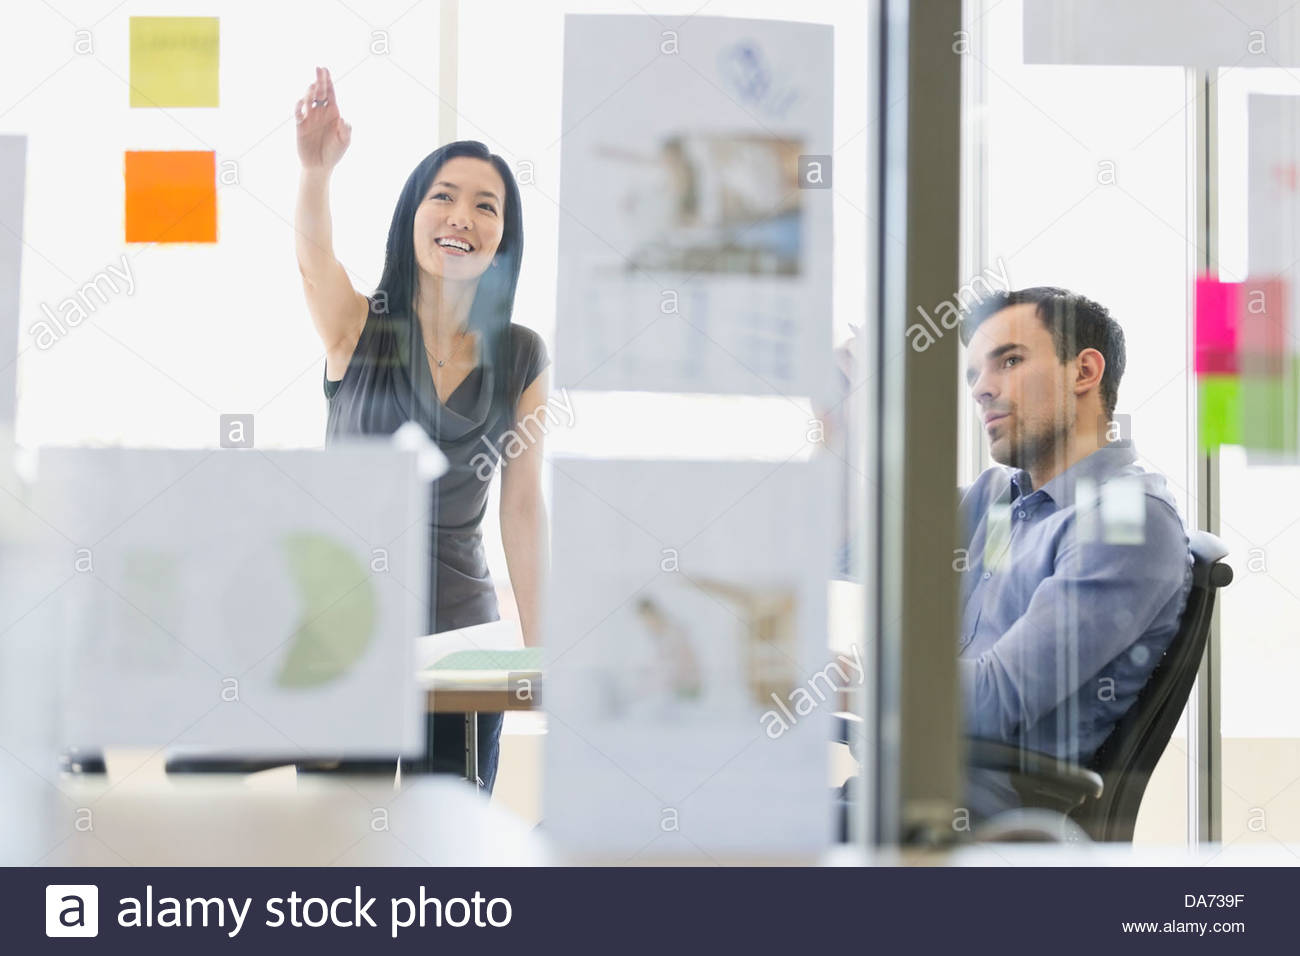 Business people discussing project in office - Stock Image